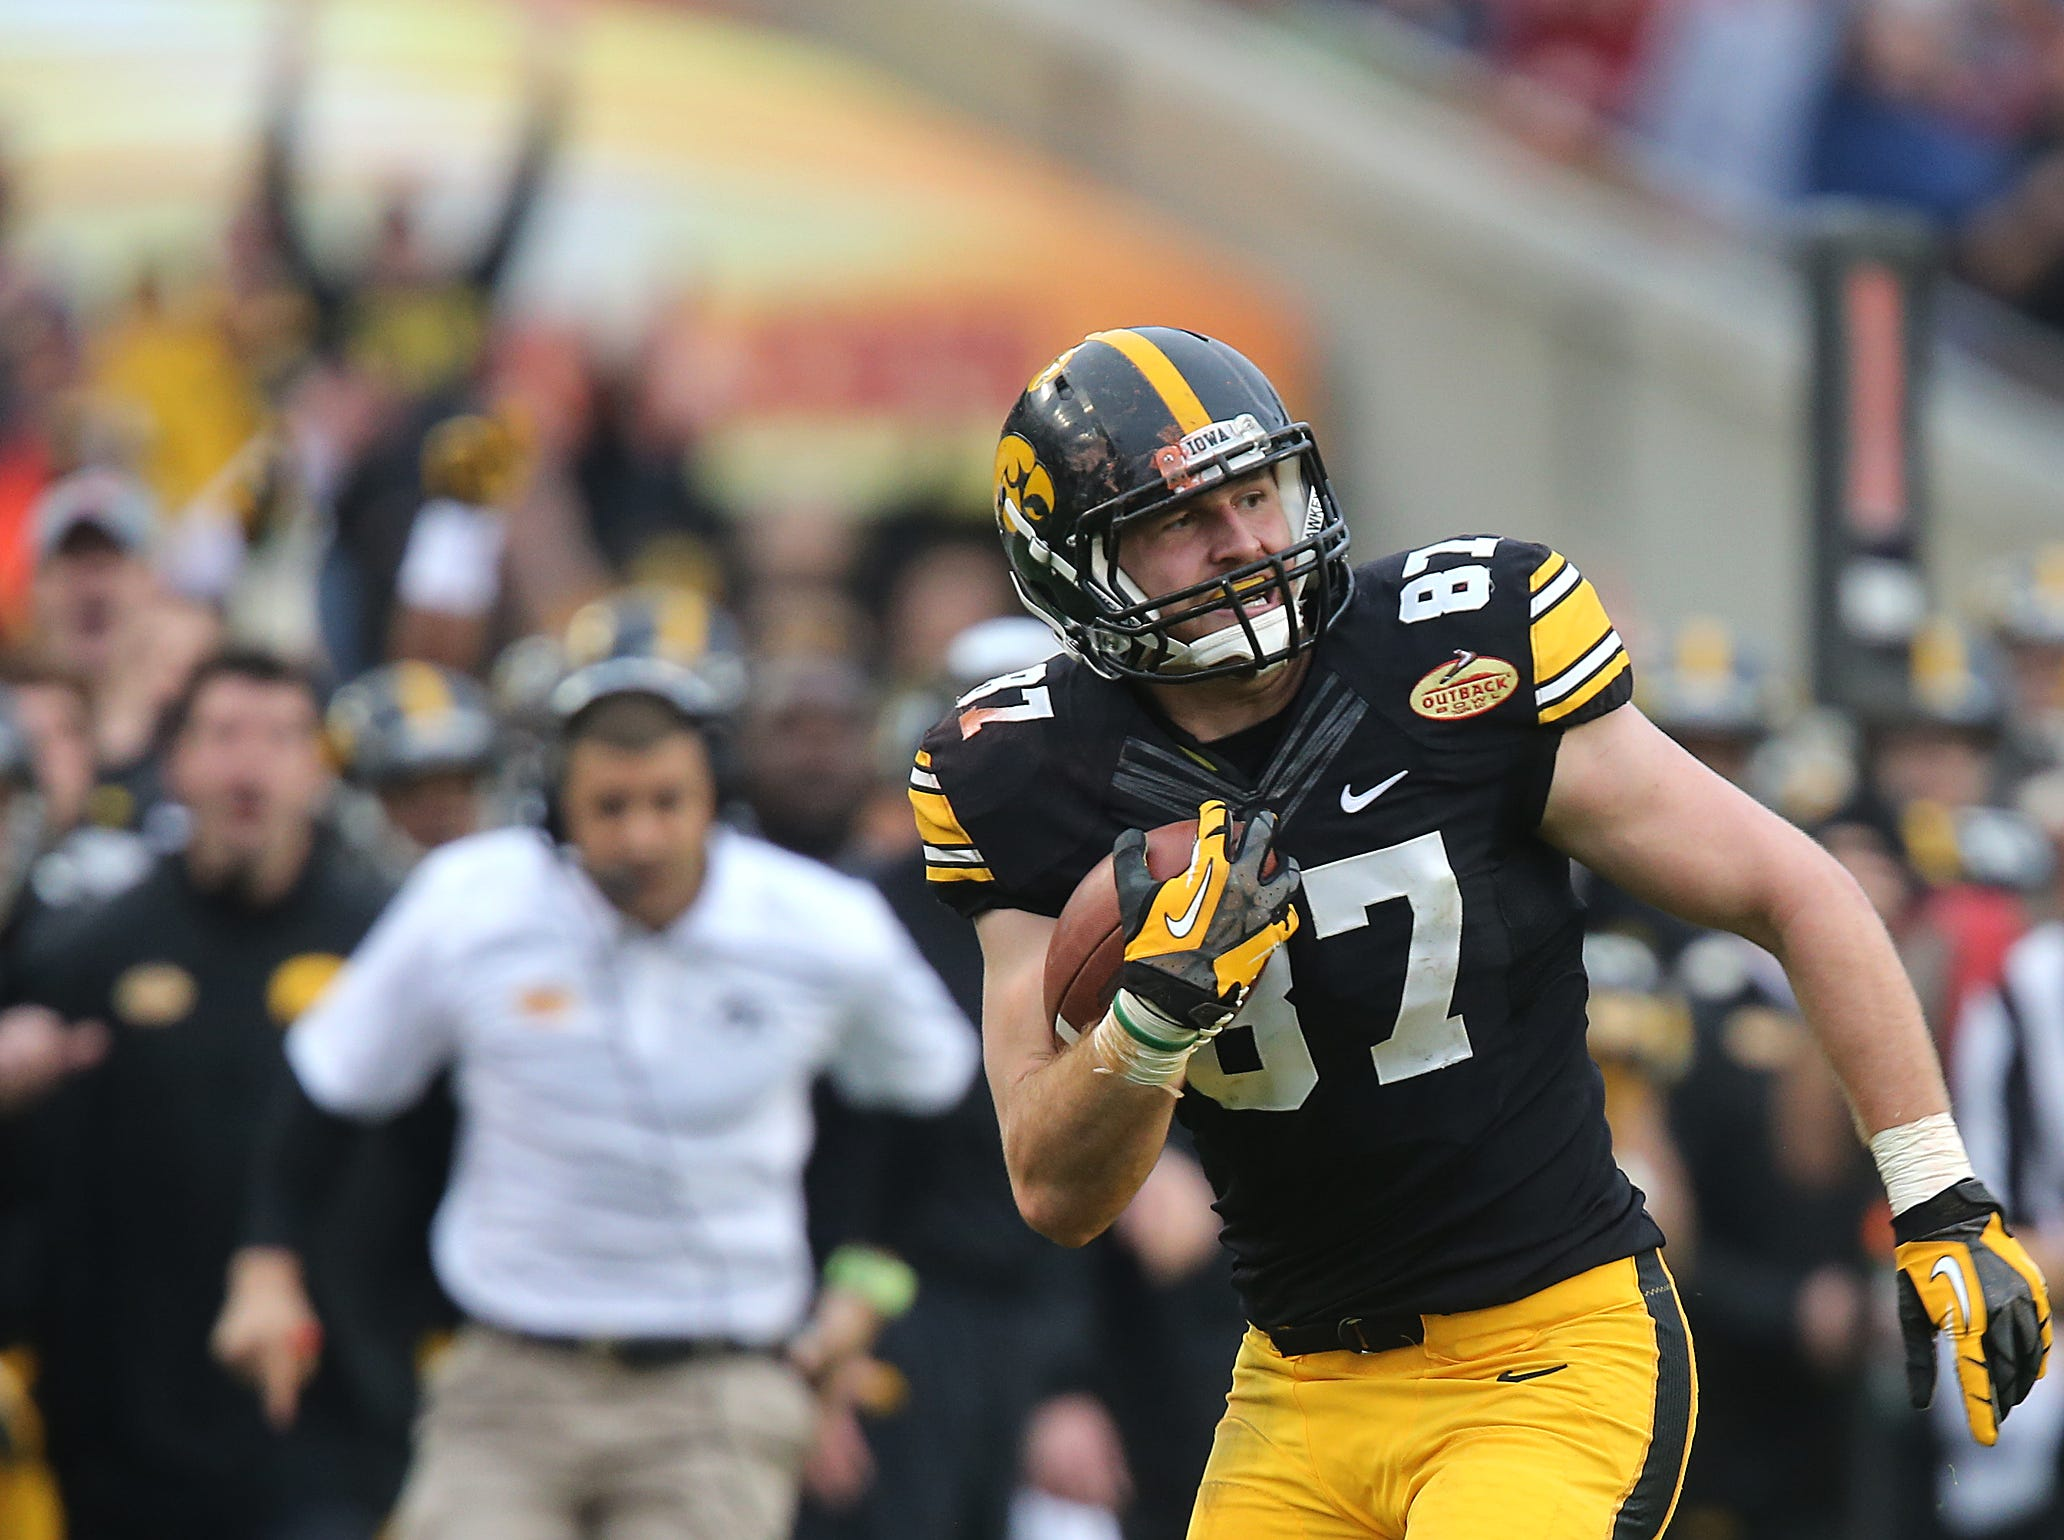 Iowa tight end Jake Duzey makes a reception in the fourth quarter against LSU in the Outback Bowl on Wednesday, Jan. 1, 2014, in Tampa, Florida. (Bryon Houlgrave/The Register)